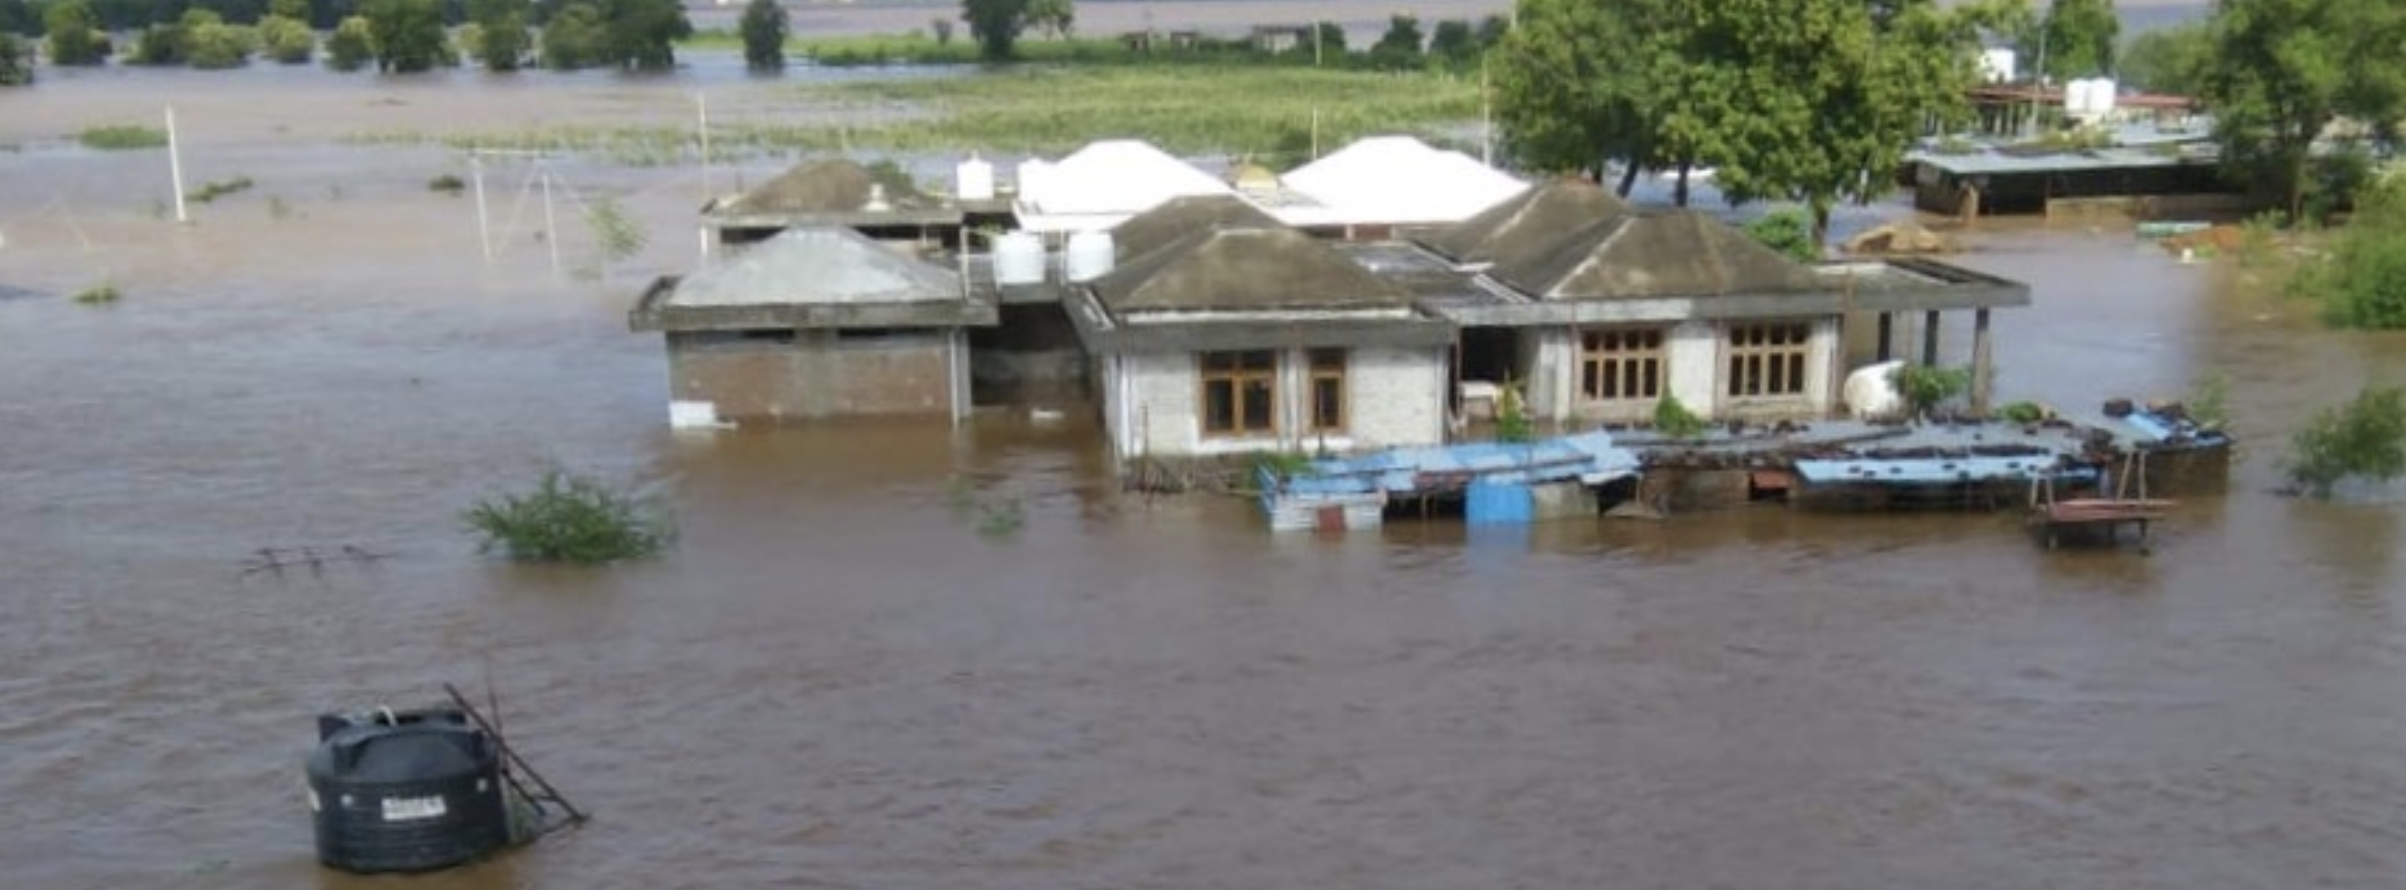 To Dam or Not To Dam? Floods in Eastern Vidarbha Revive an Old Debate - The Wire Science